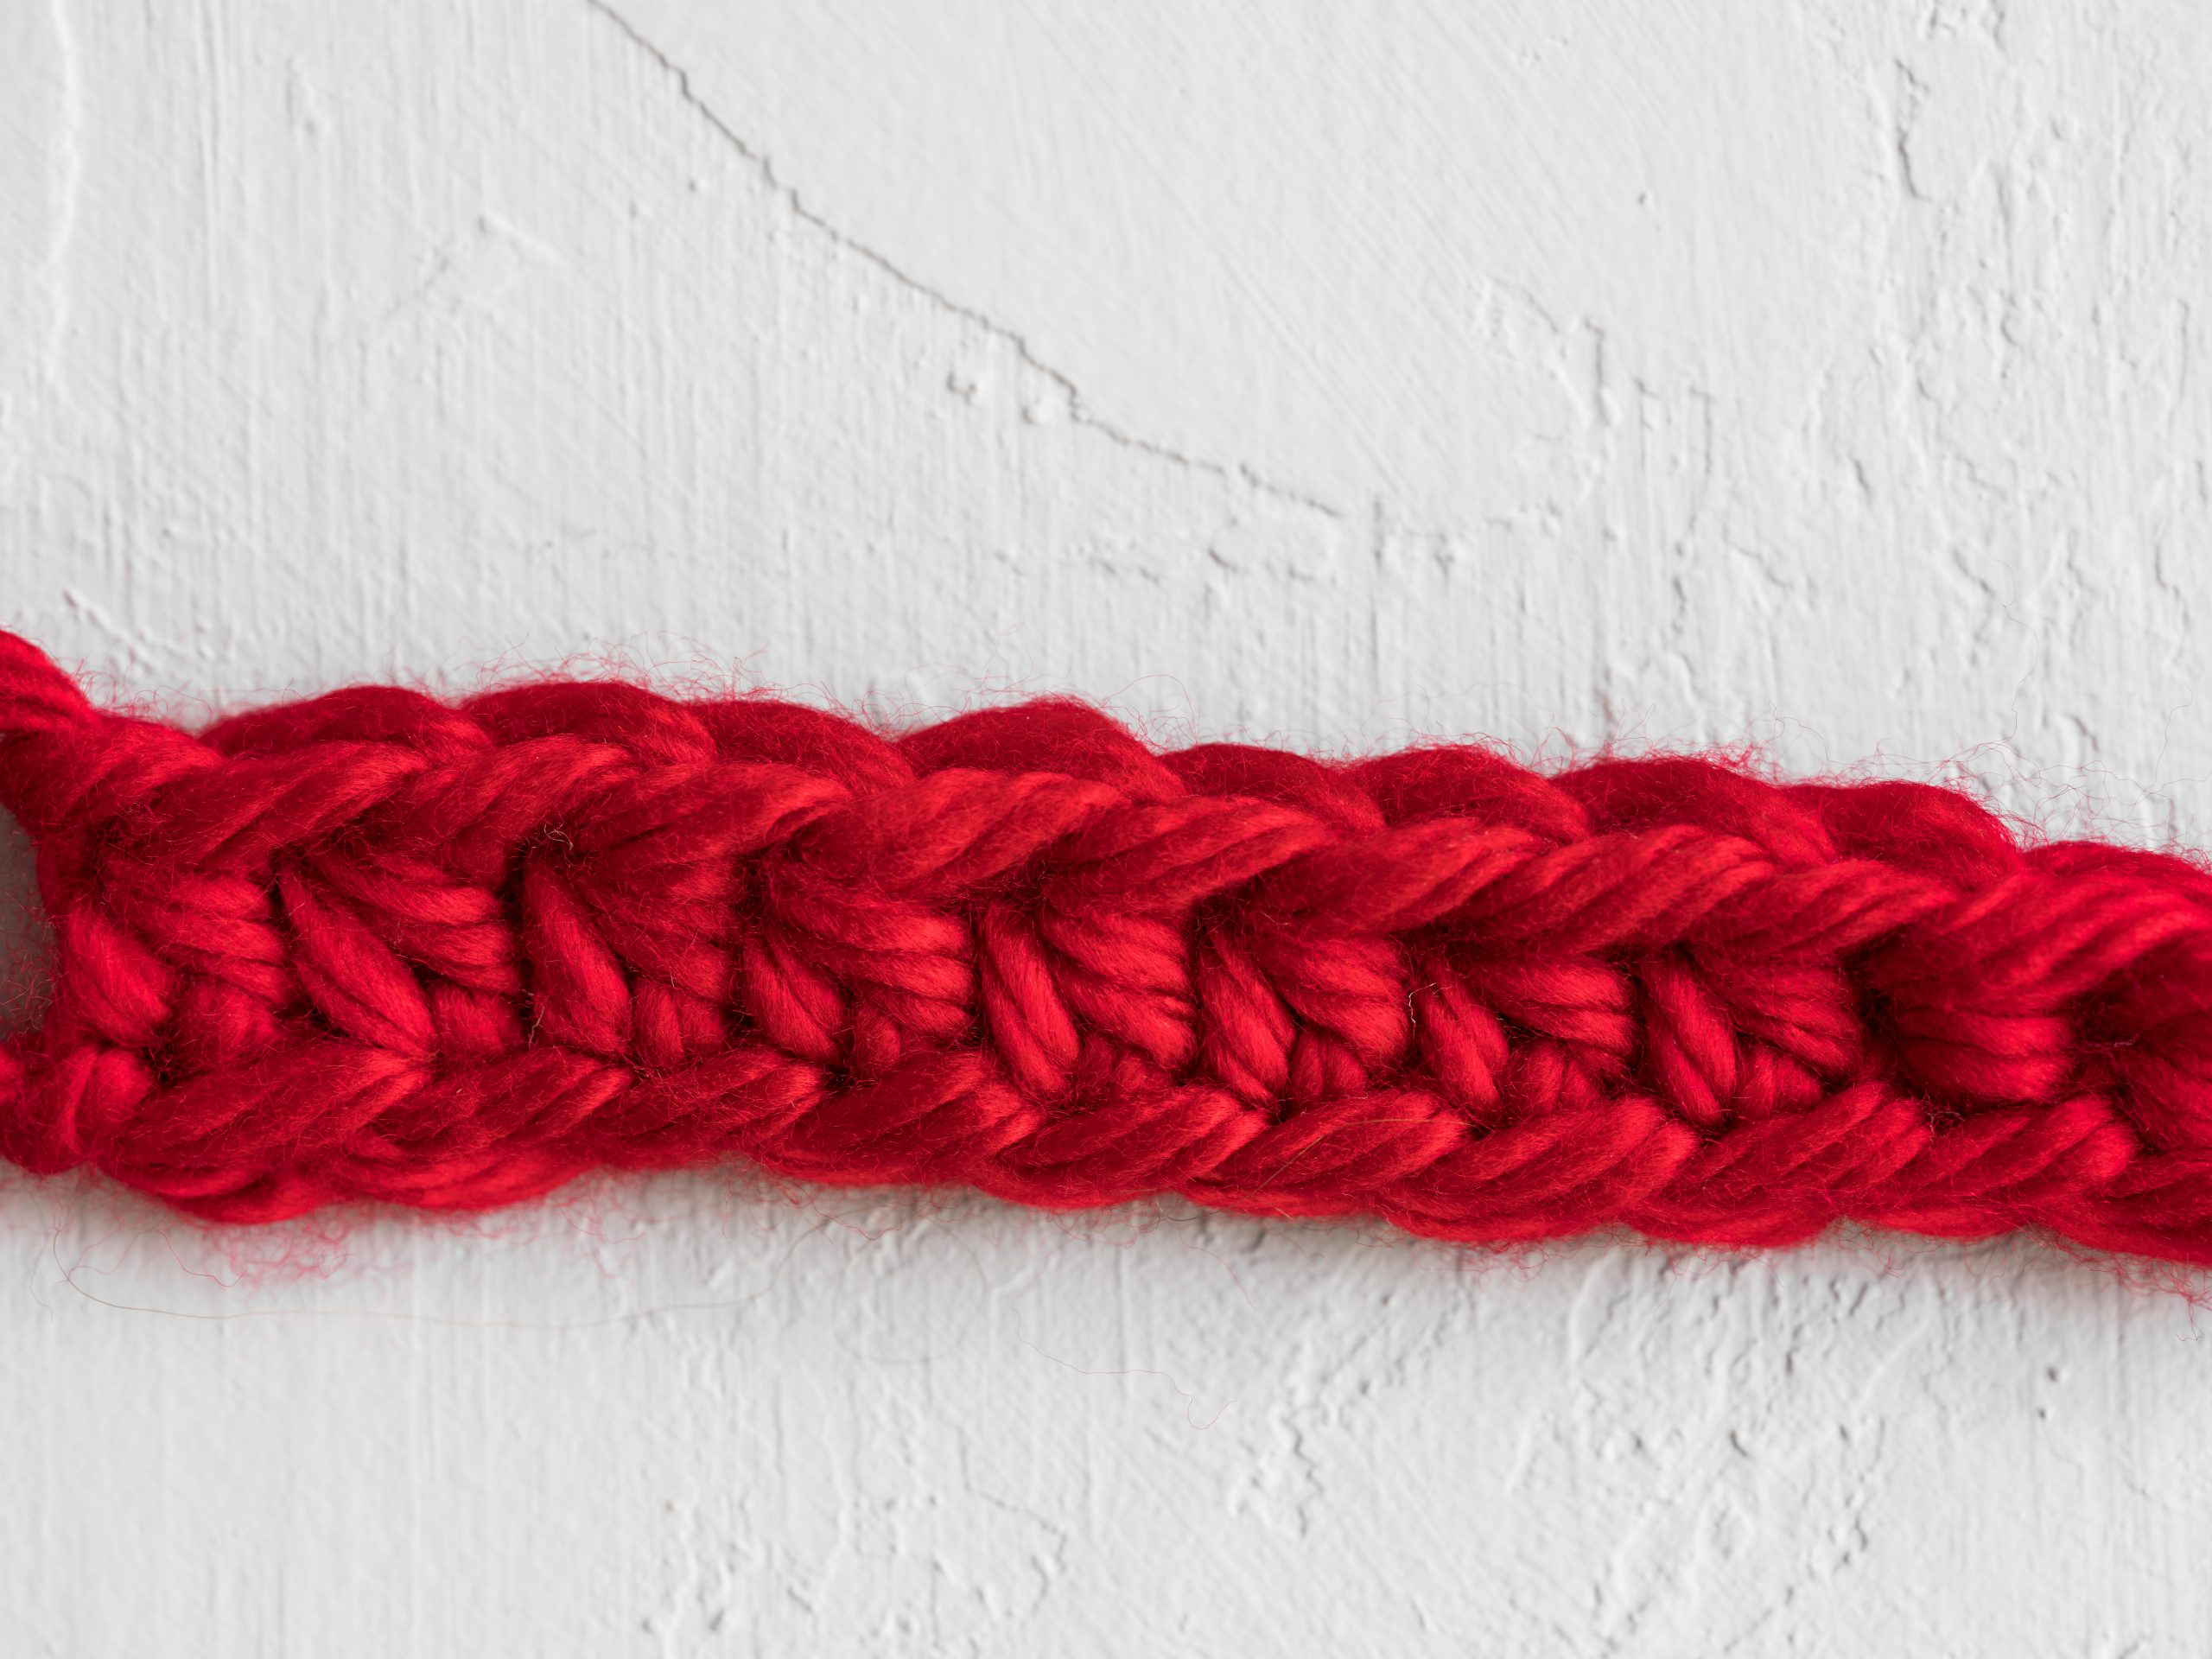 Red stitched line